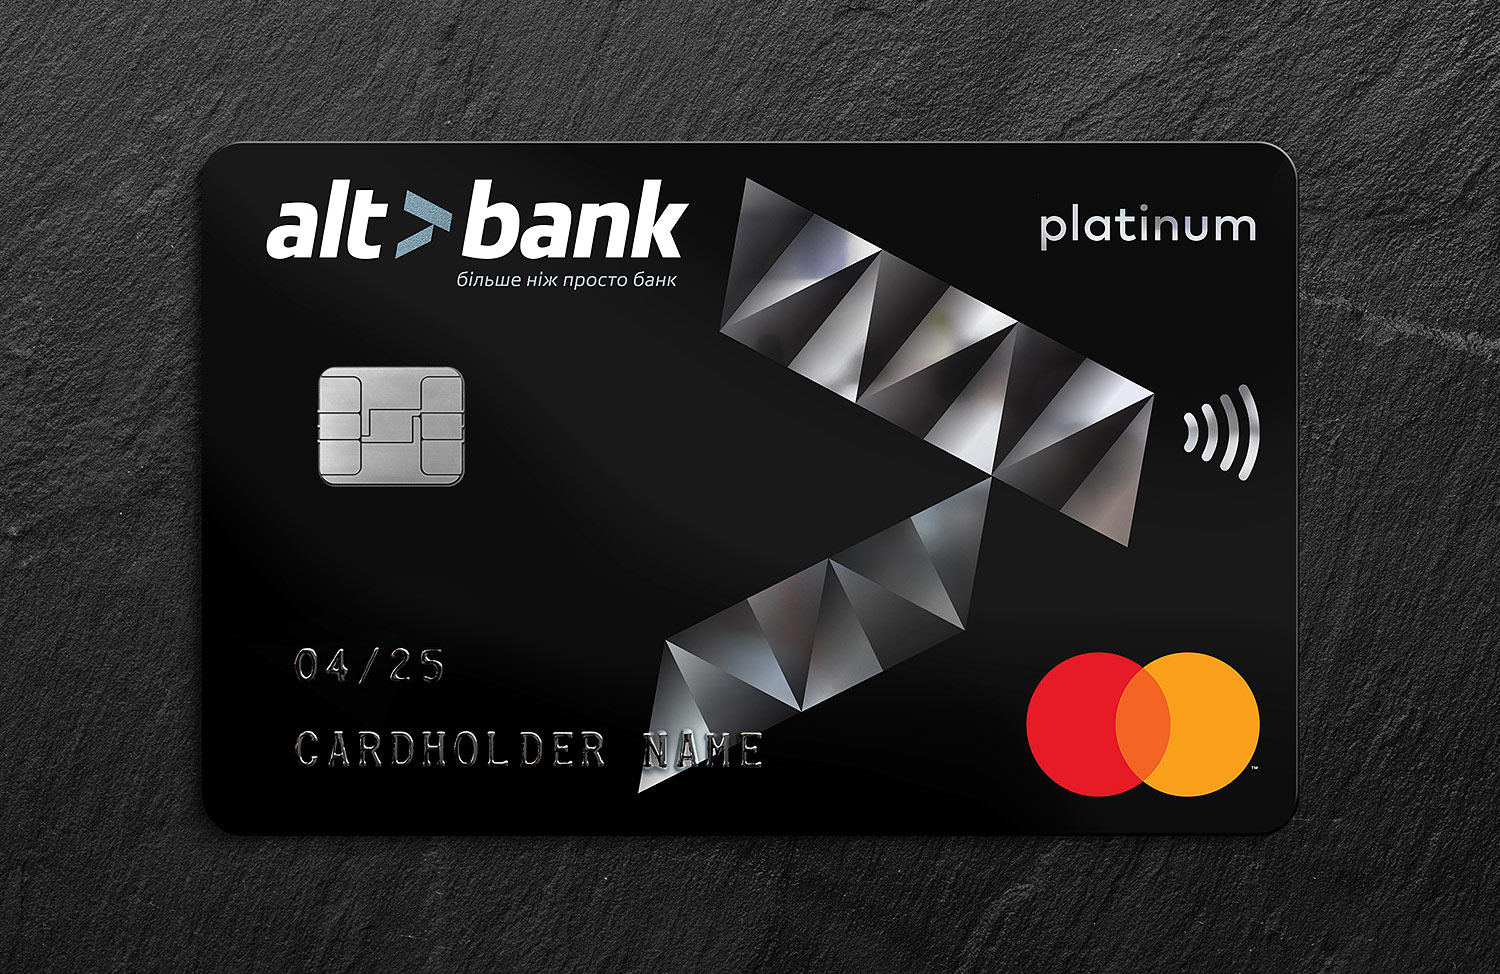 Altbank Platinum. Premium platinum card, black plastic and foil. Payment card design.